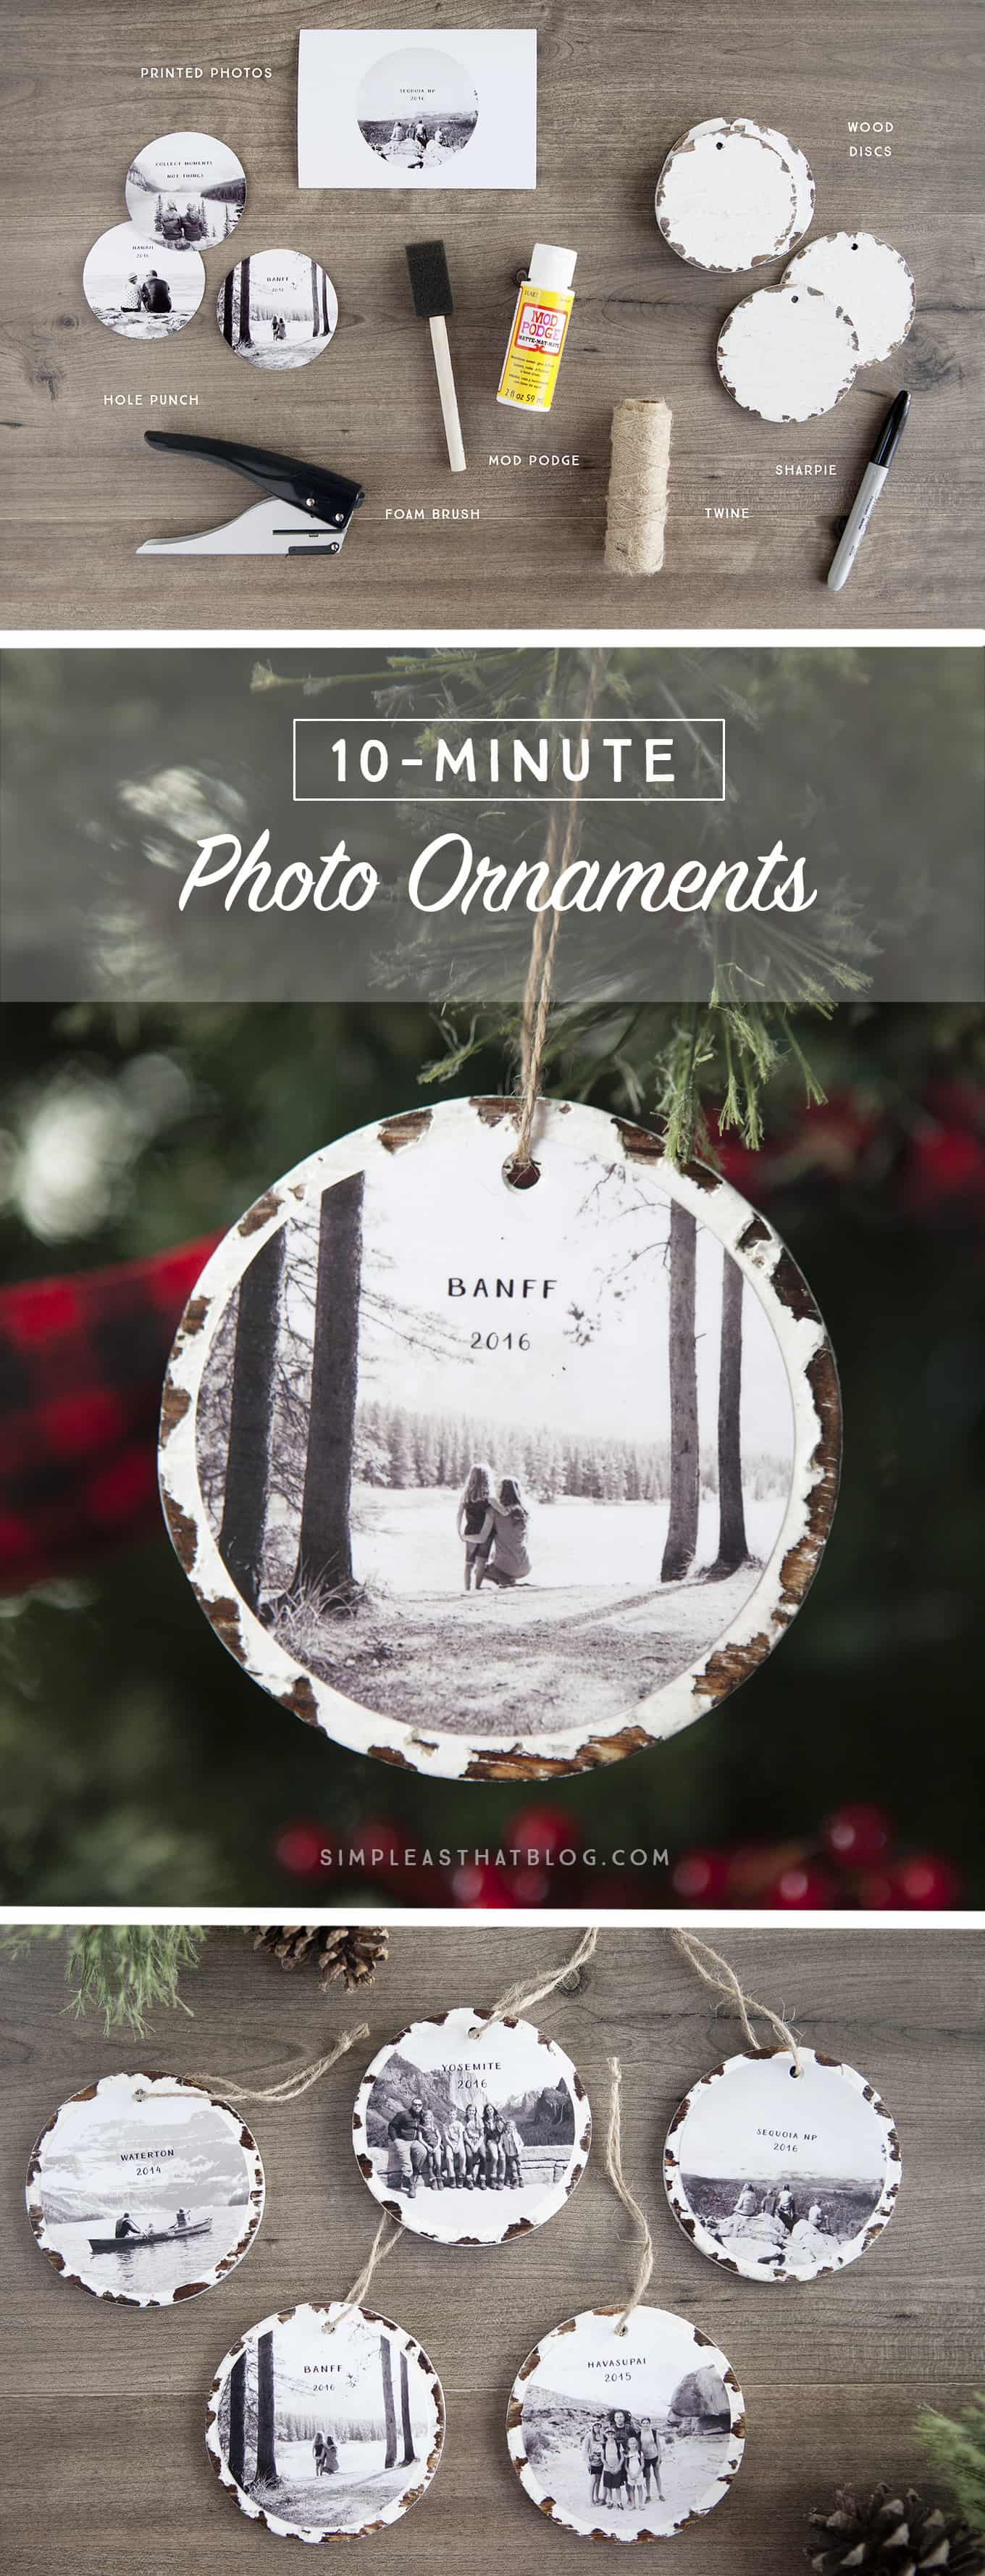 Personalized photo memory ornaments